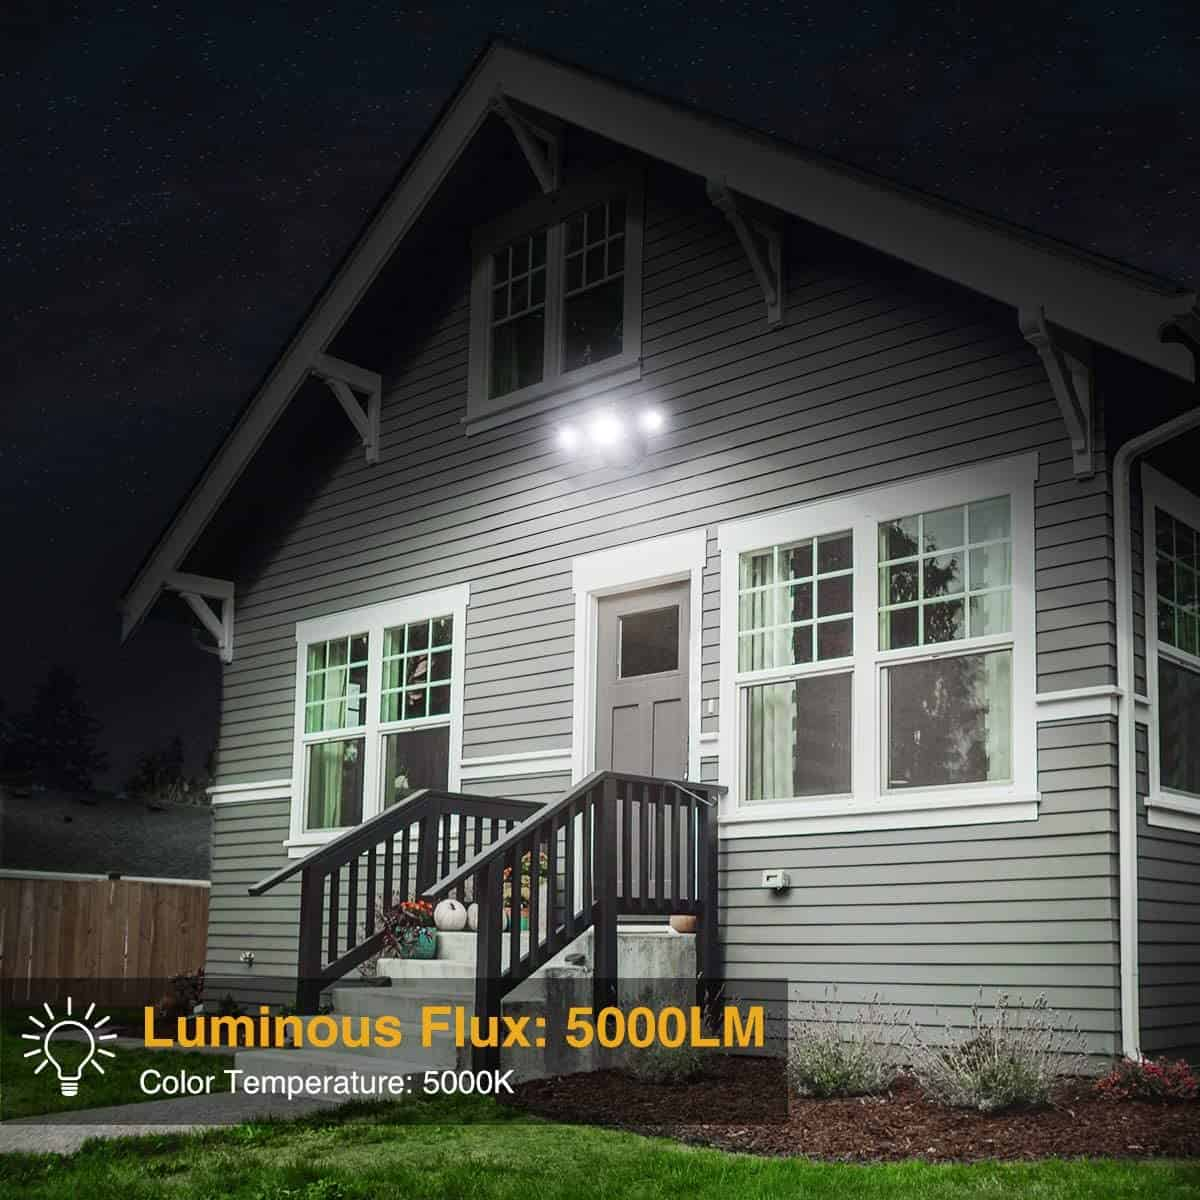 led-security-light-outdoor-photosell-motion-dust-dawn-10